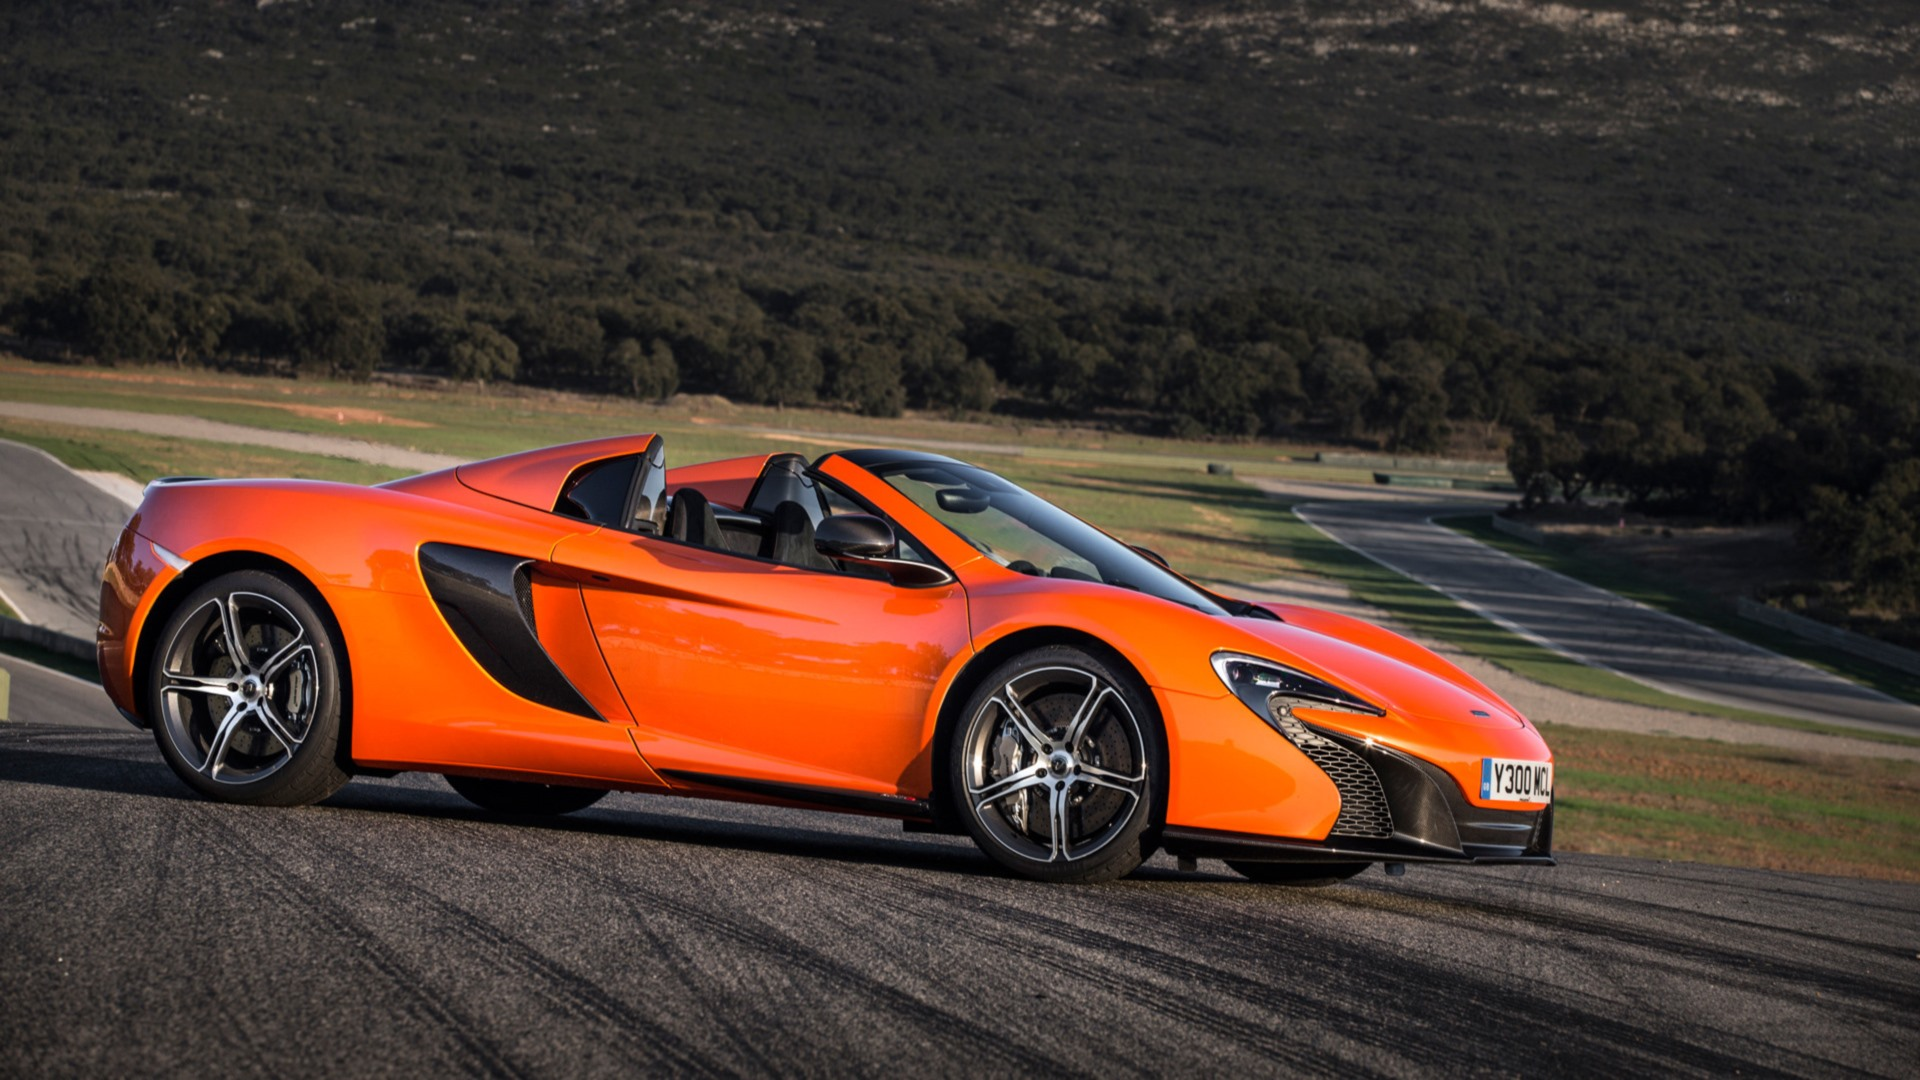 McLaren 650S Spider Orange Car Supercar Car Vehicle McLaren McLaren ...